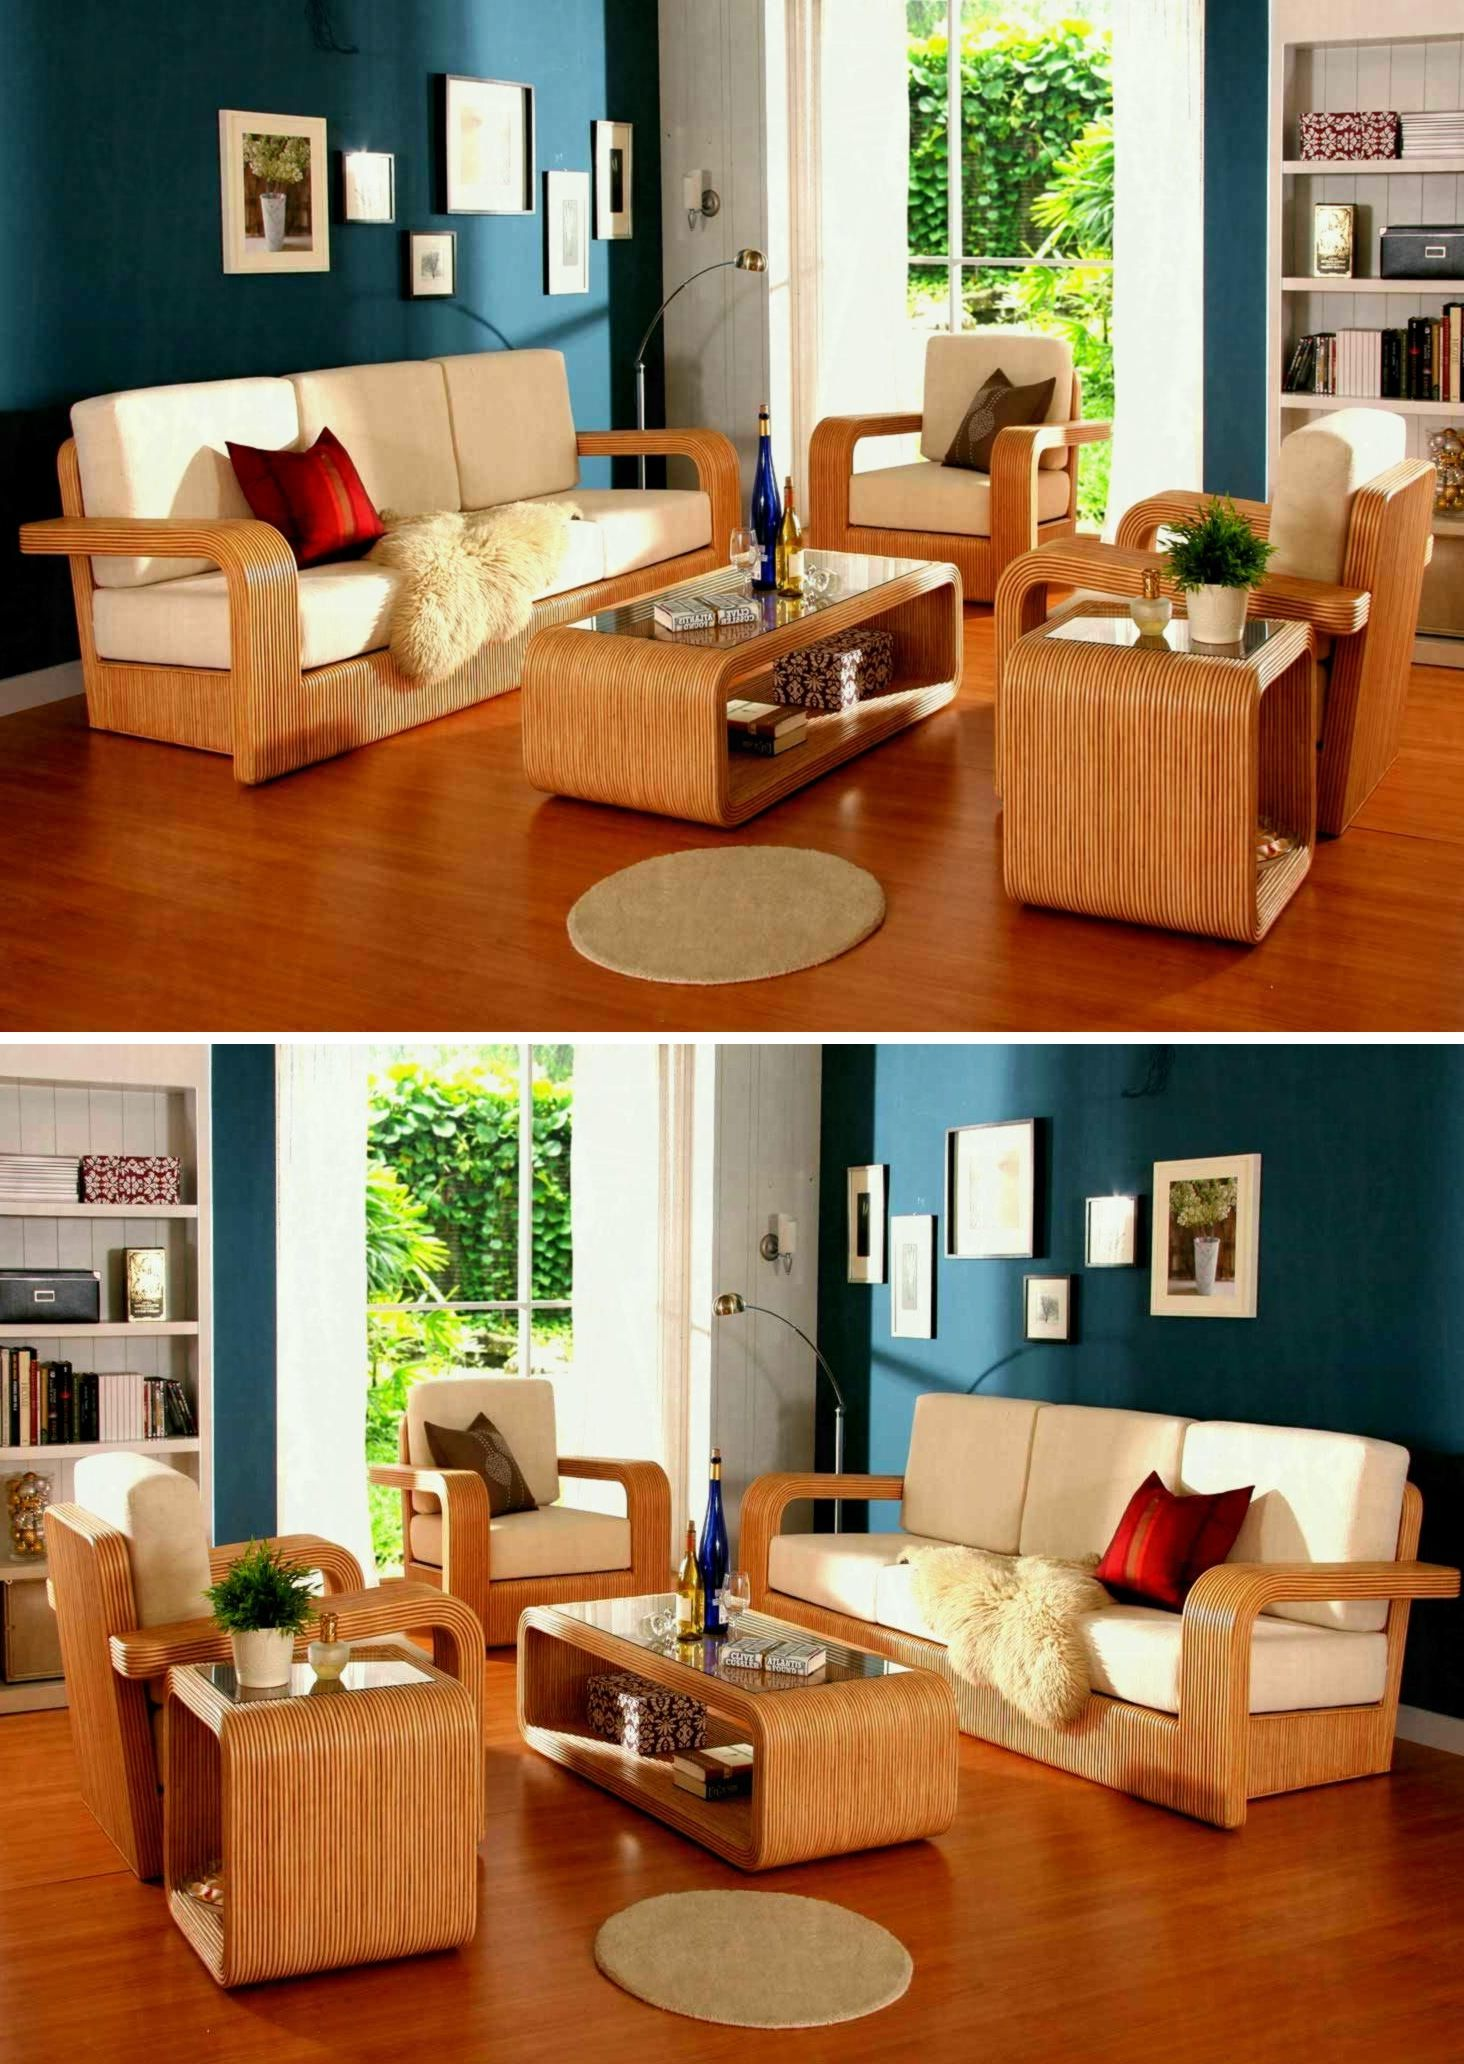 Latest Wooden Sofa Set Designs 2019 Best Sofa Models For Your